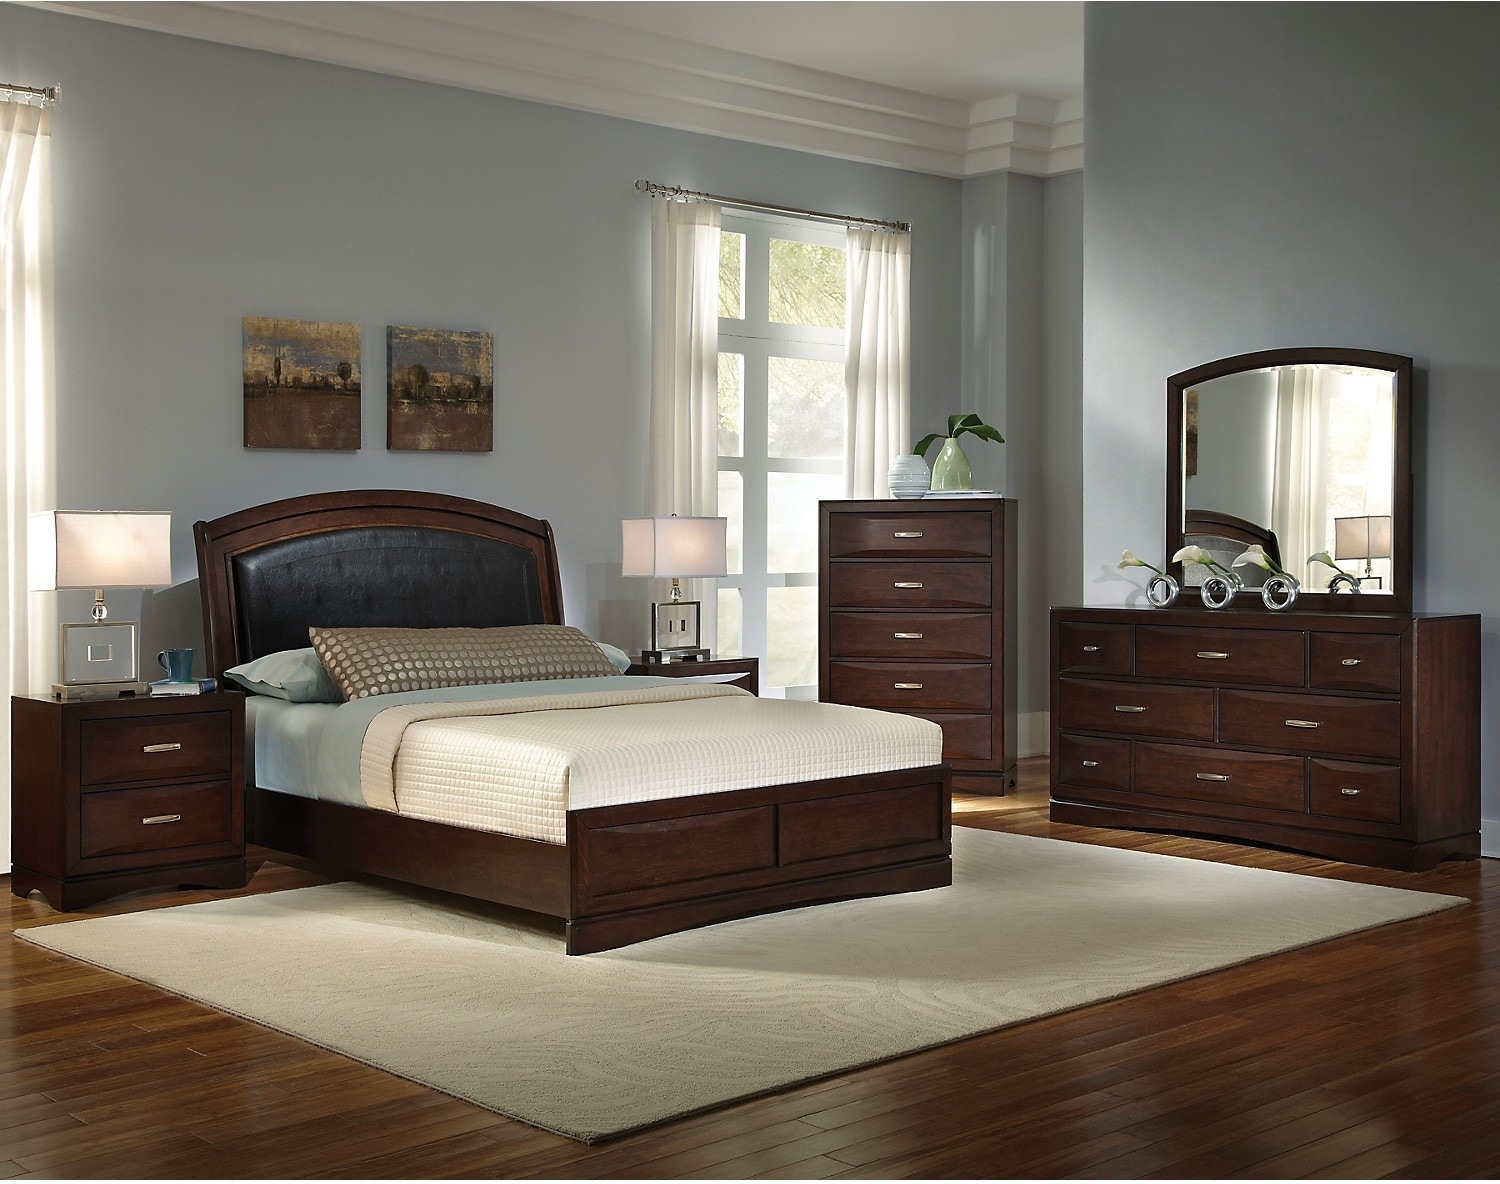 Beverly 8 piece king bedroom set the brick for Bed and bedroom furniture sets